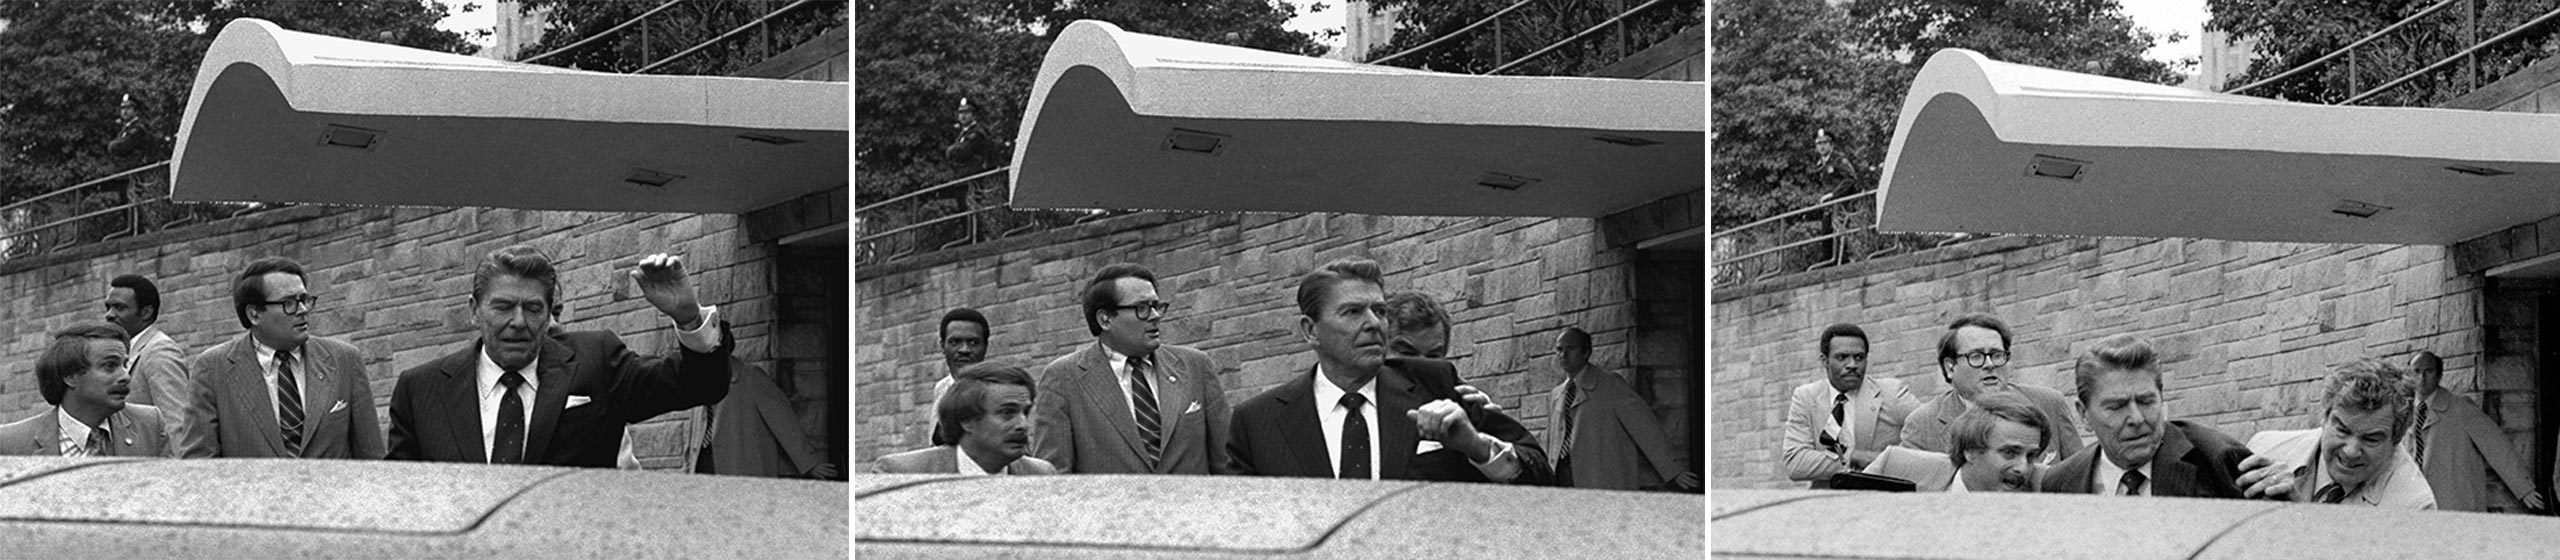 U.S. President Ronald Reagan raises his left arm as he is shot at by an assailant outside a hotel in Washington, D.C., on March 30, 1981.